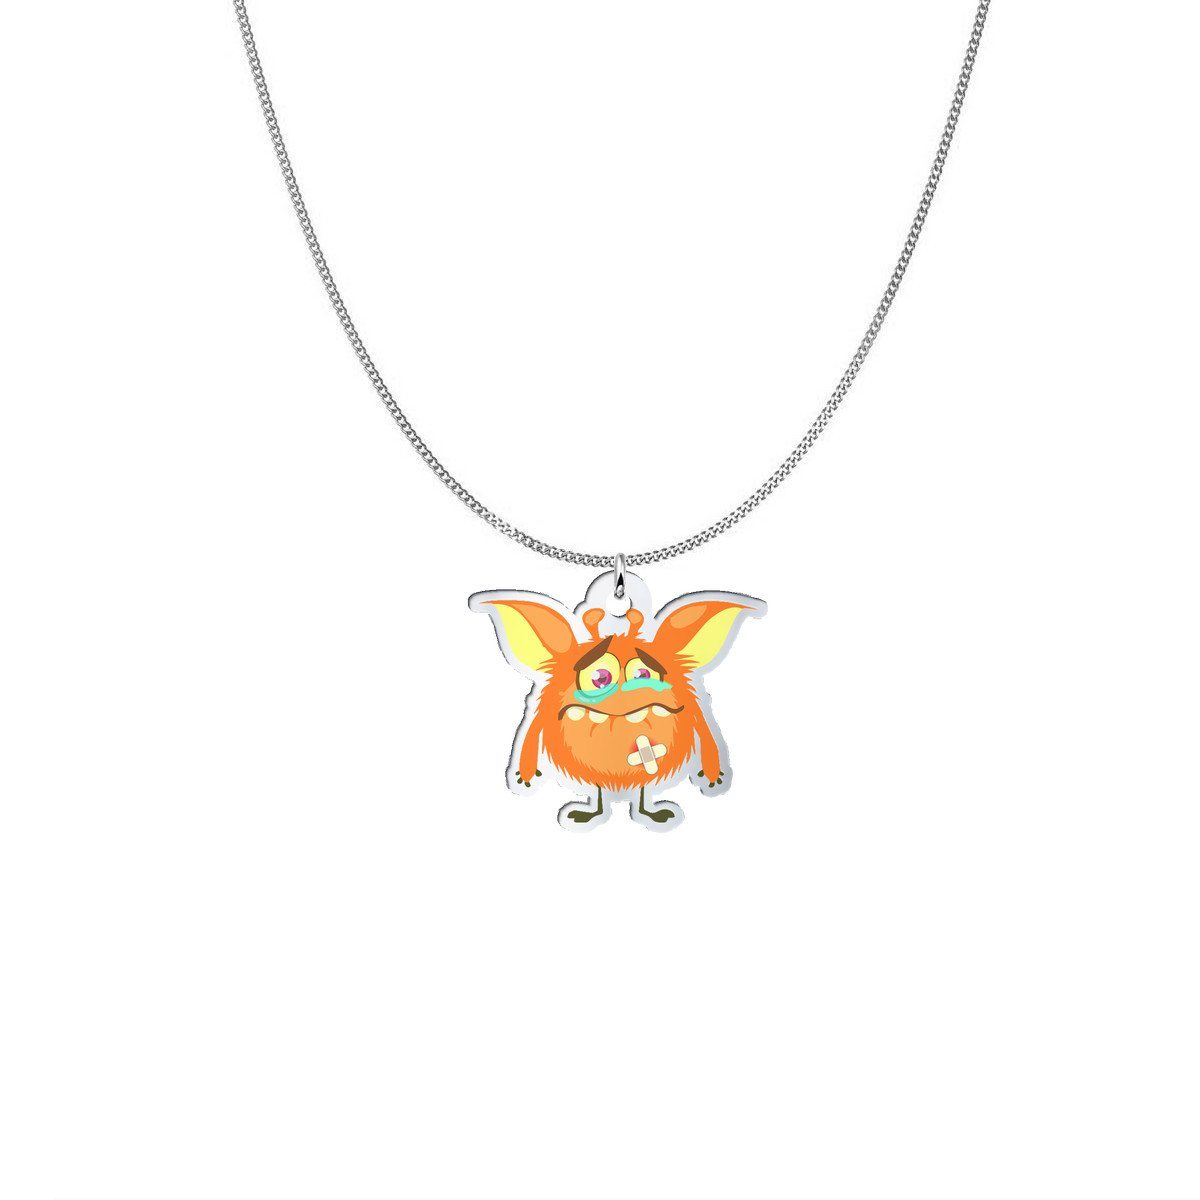 Pendant - Sonny The CRPS Monster Silver Necklace